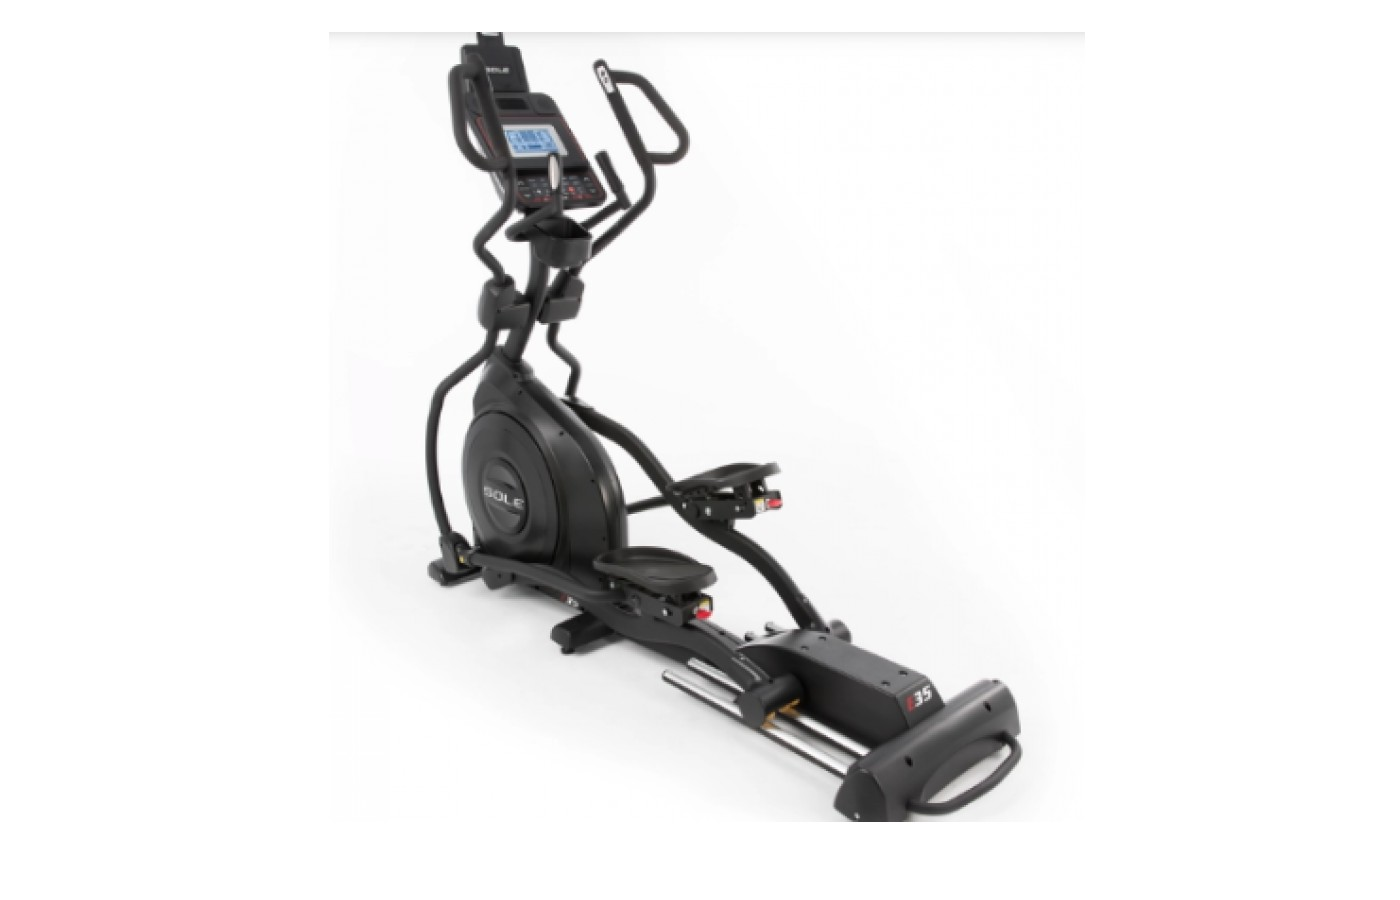 The Sole Fitness E35 Elliptical Trainer has a full featured LED console.